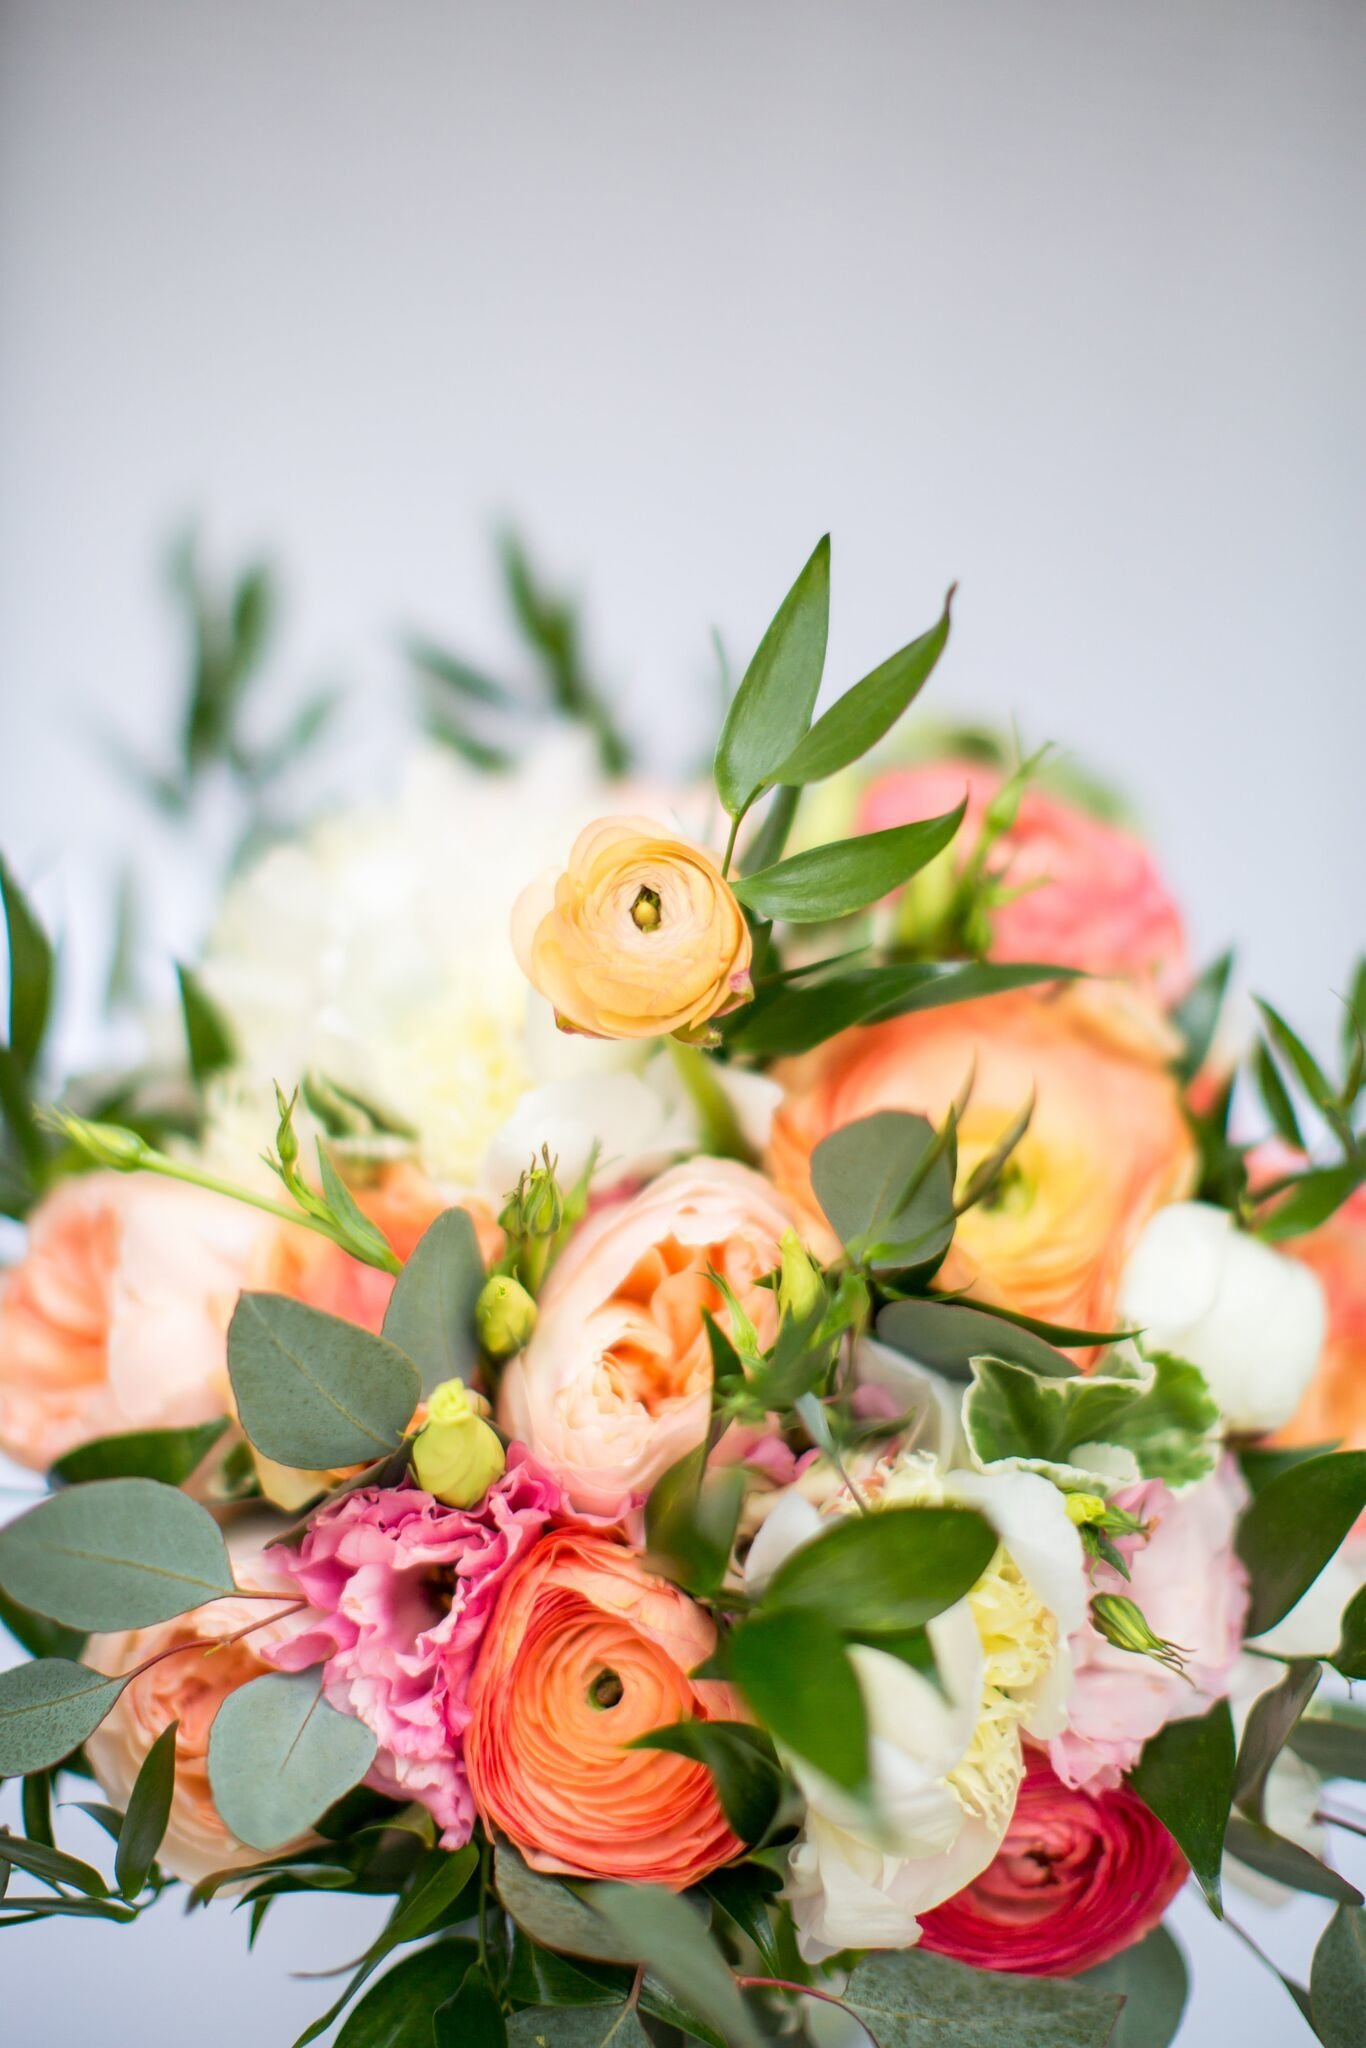 Your-Event-Florist-Arizona-Wedding-Flowers101